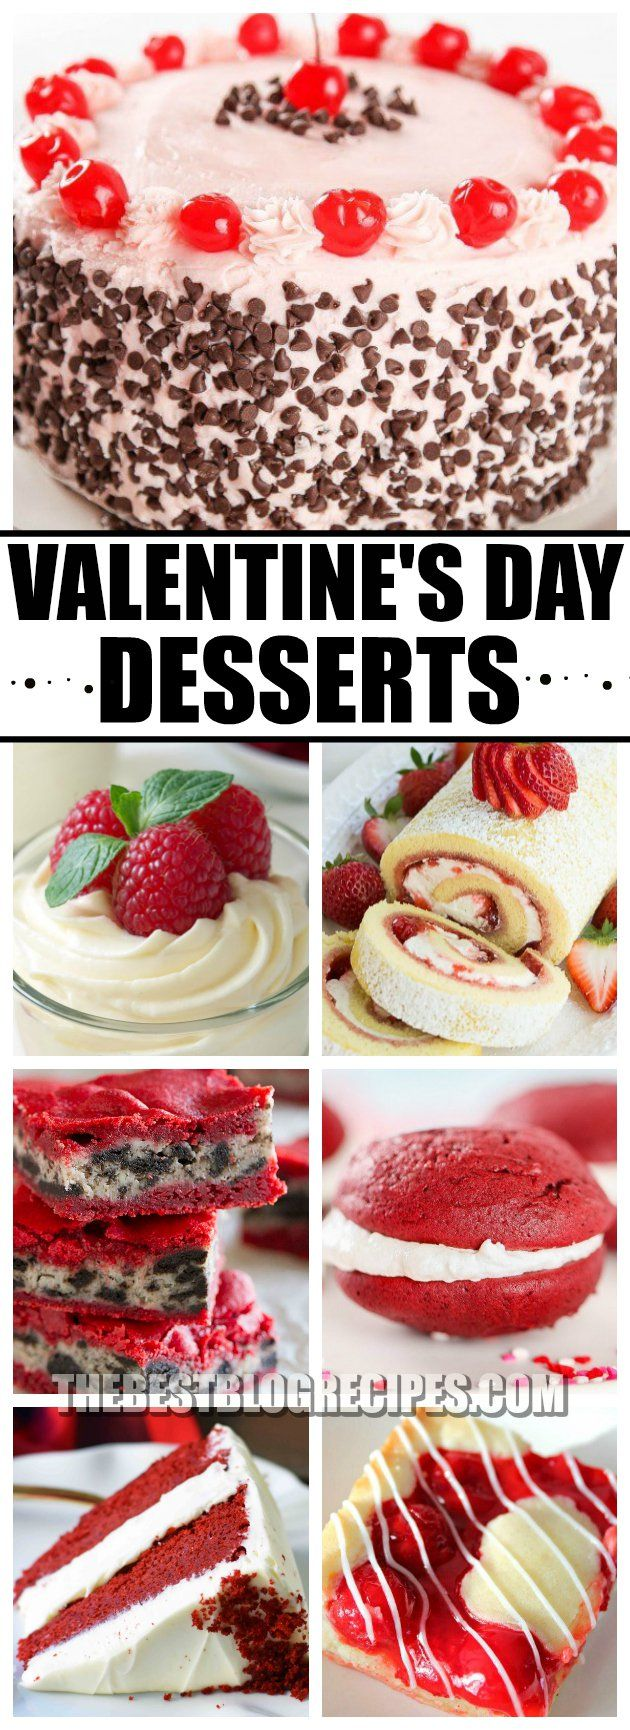 Valentine's Day is all about love, so we are sharing with you desserts that you will fall for this holiday! Between the adorable appearance and yummy sweetness of these desserts, we know these treats will become your new valentine favorites! via @bestblogrecipes